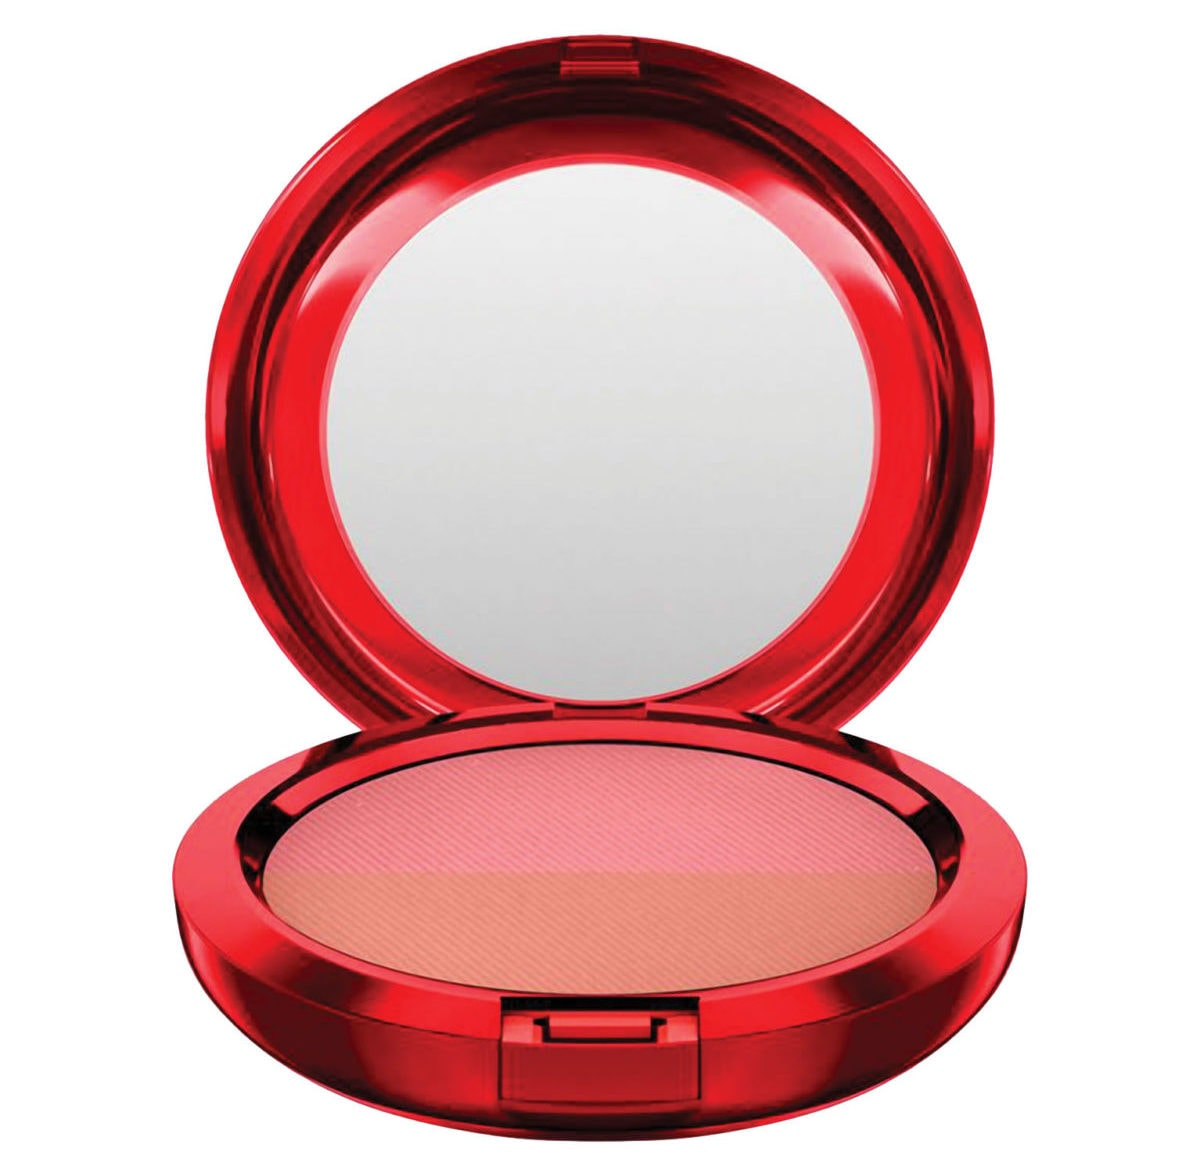 MAC Lunar New Year Lipstick and Blush Duo, £12.75;